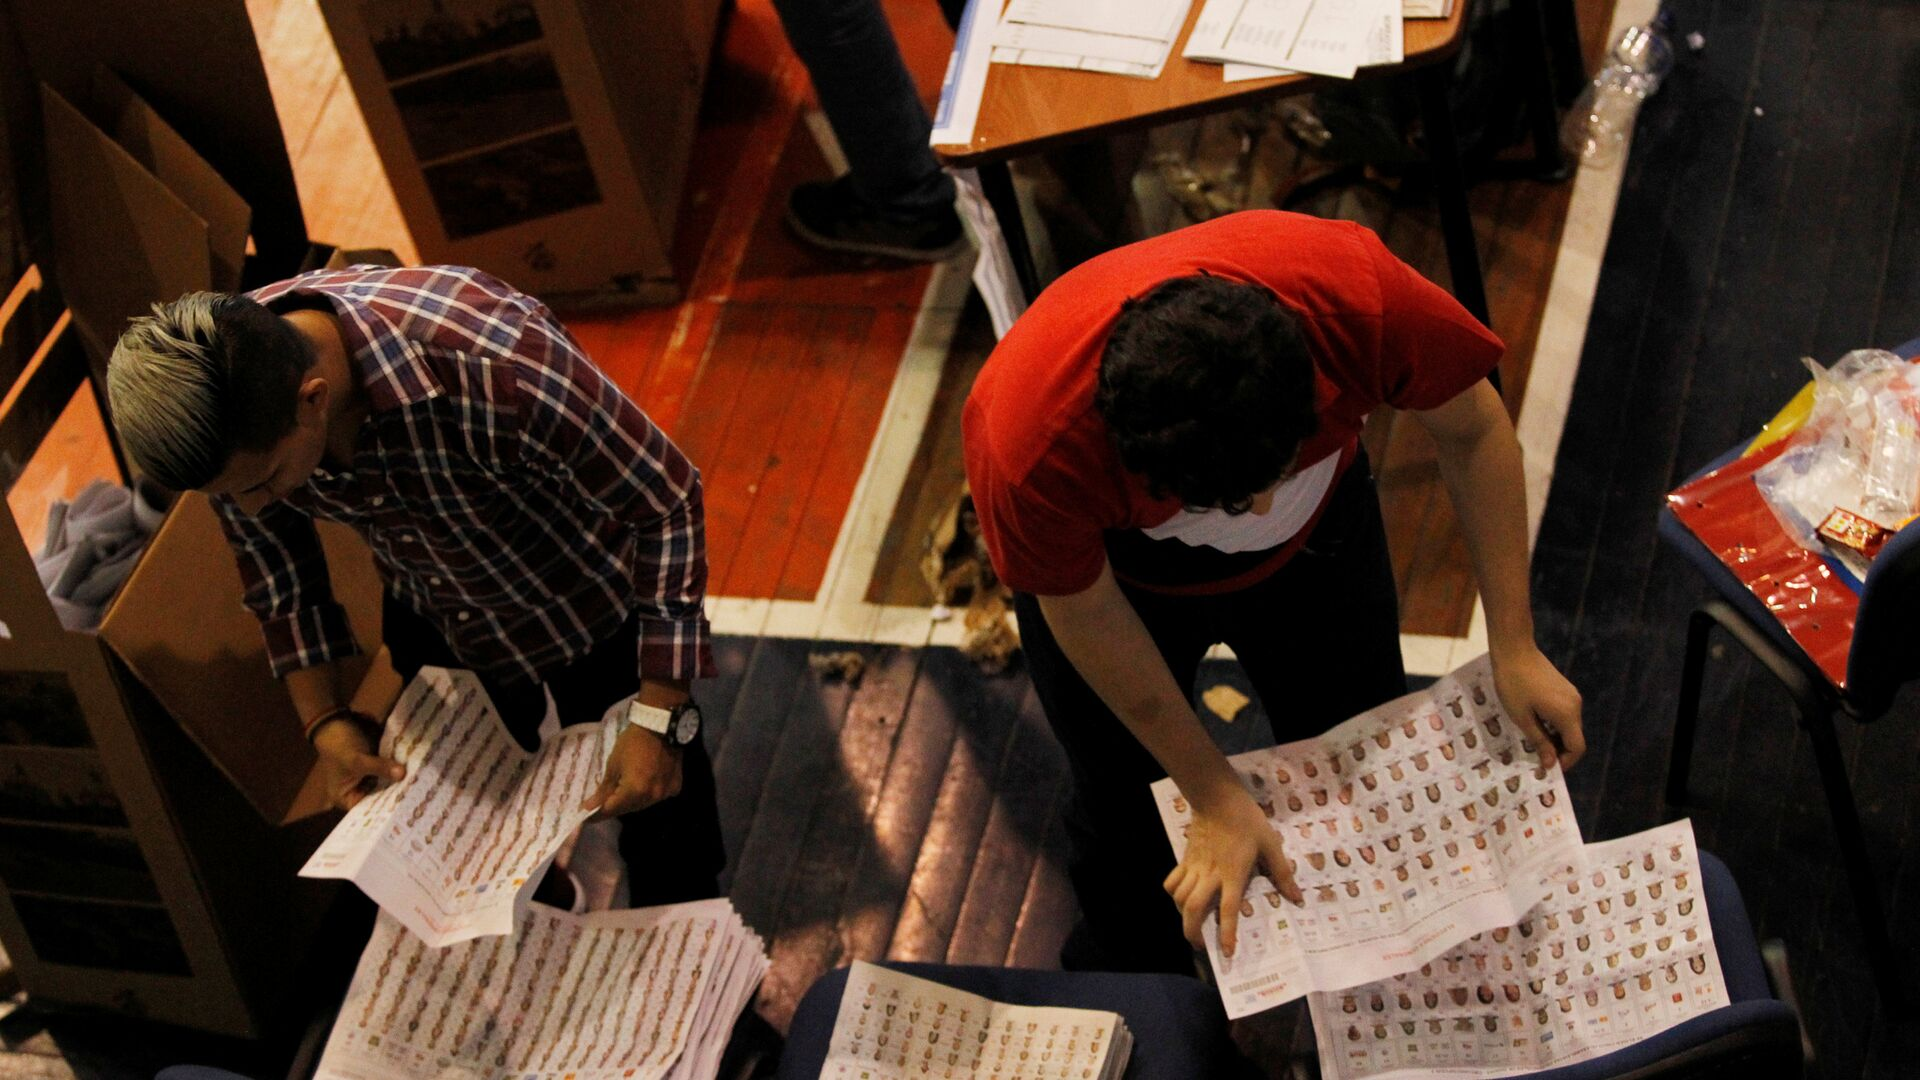 Poll workers count ballots at a polling station in Guayaquil, Ecuador - Sputnik Mundo, 1920, 05.04.2021